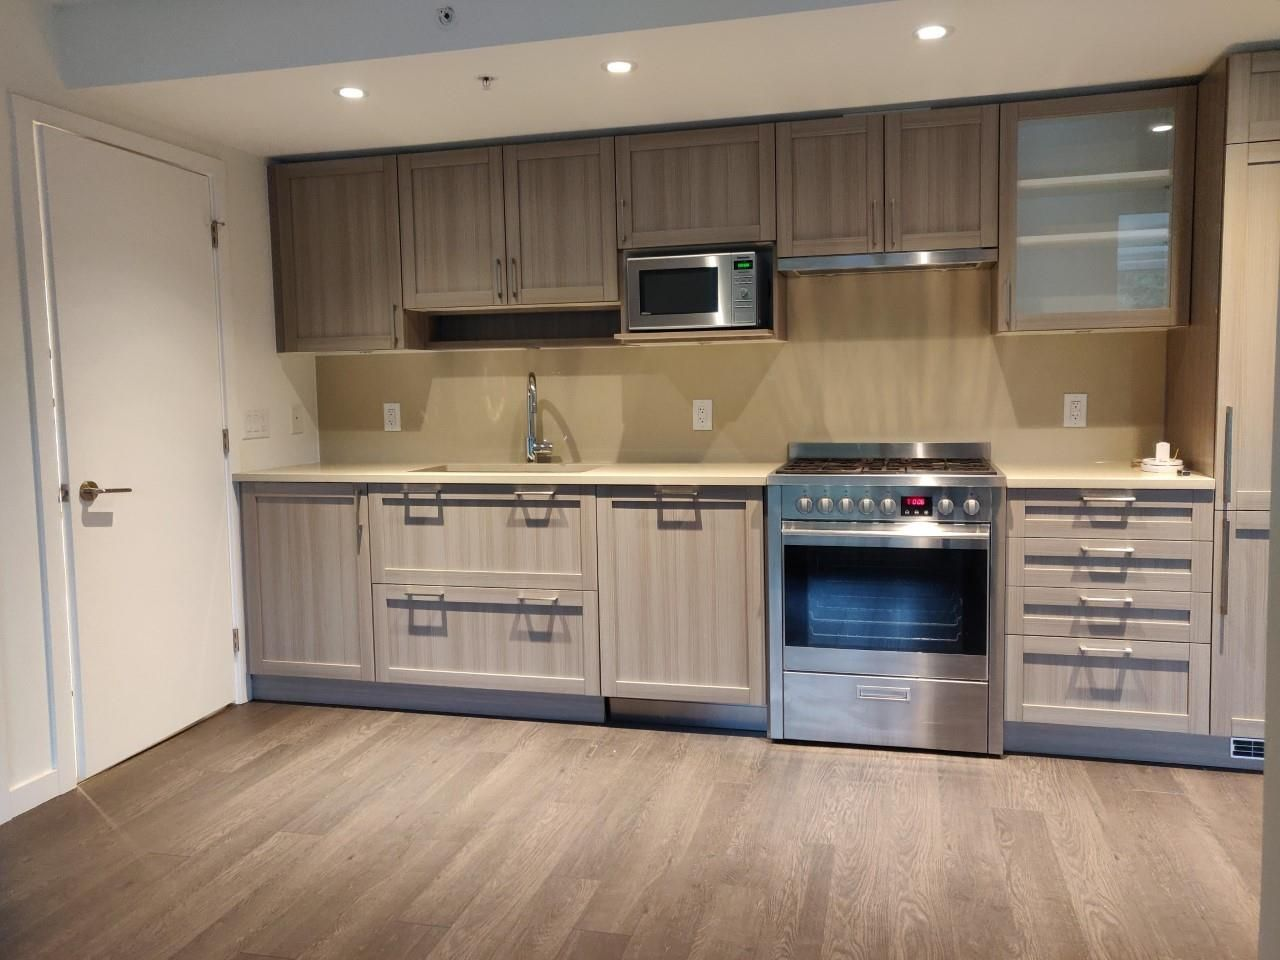 """Photo 2: Photos: 205 5515 BOUNDARY Road in Vancouver: Collingwood VE Condo for sale in """"WALL CENTER CETNRAL PARK"""" (Vancouver East)  : MLS®# R2516109"""